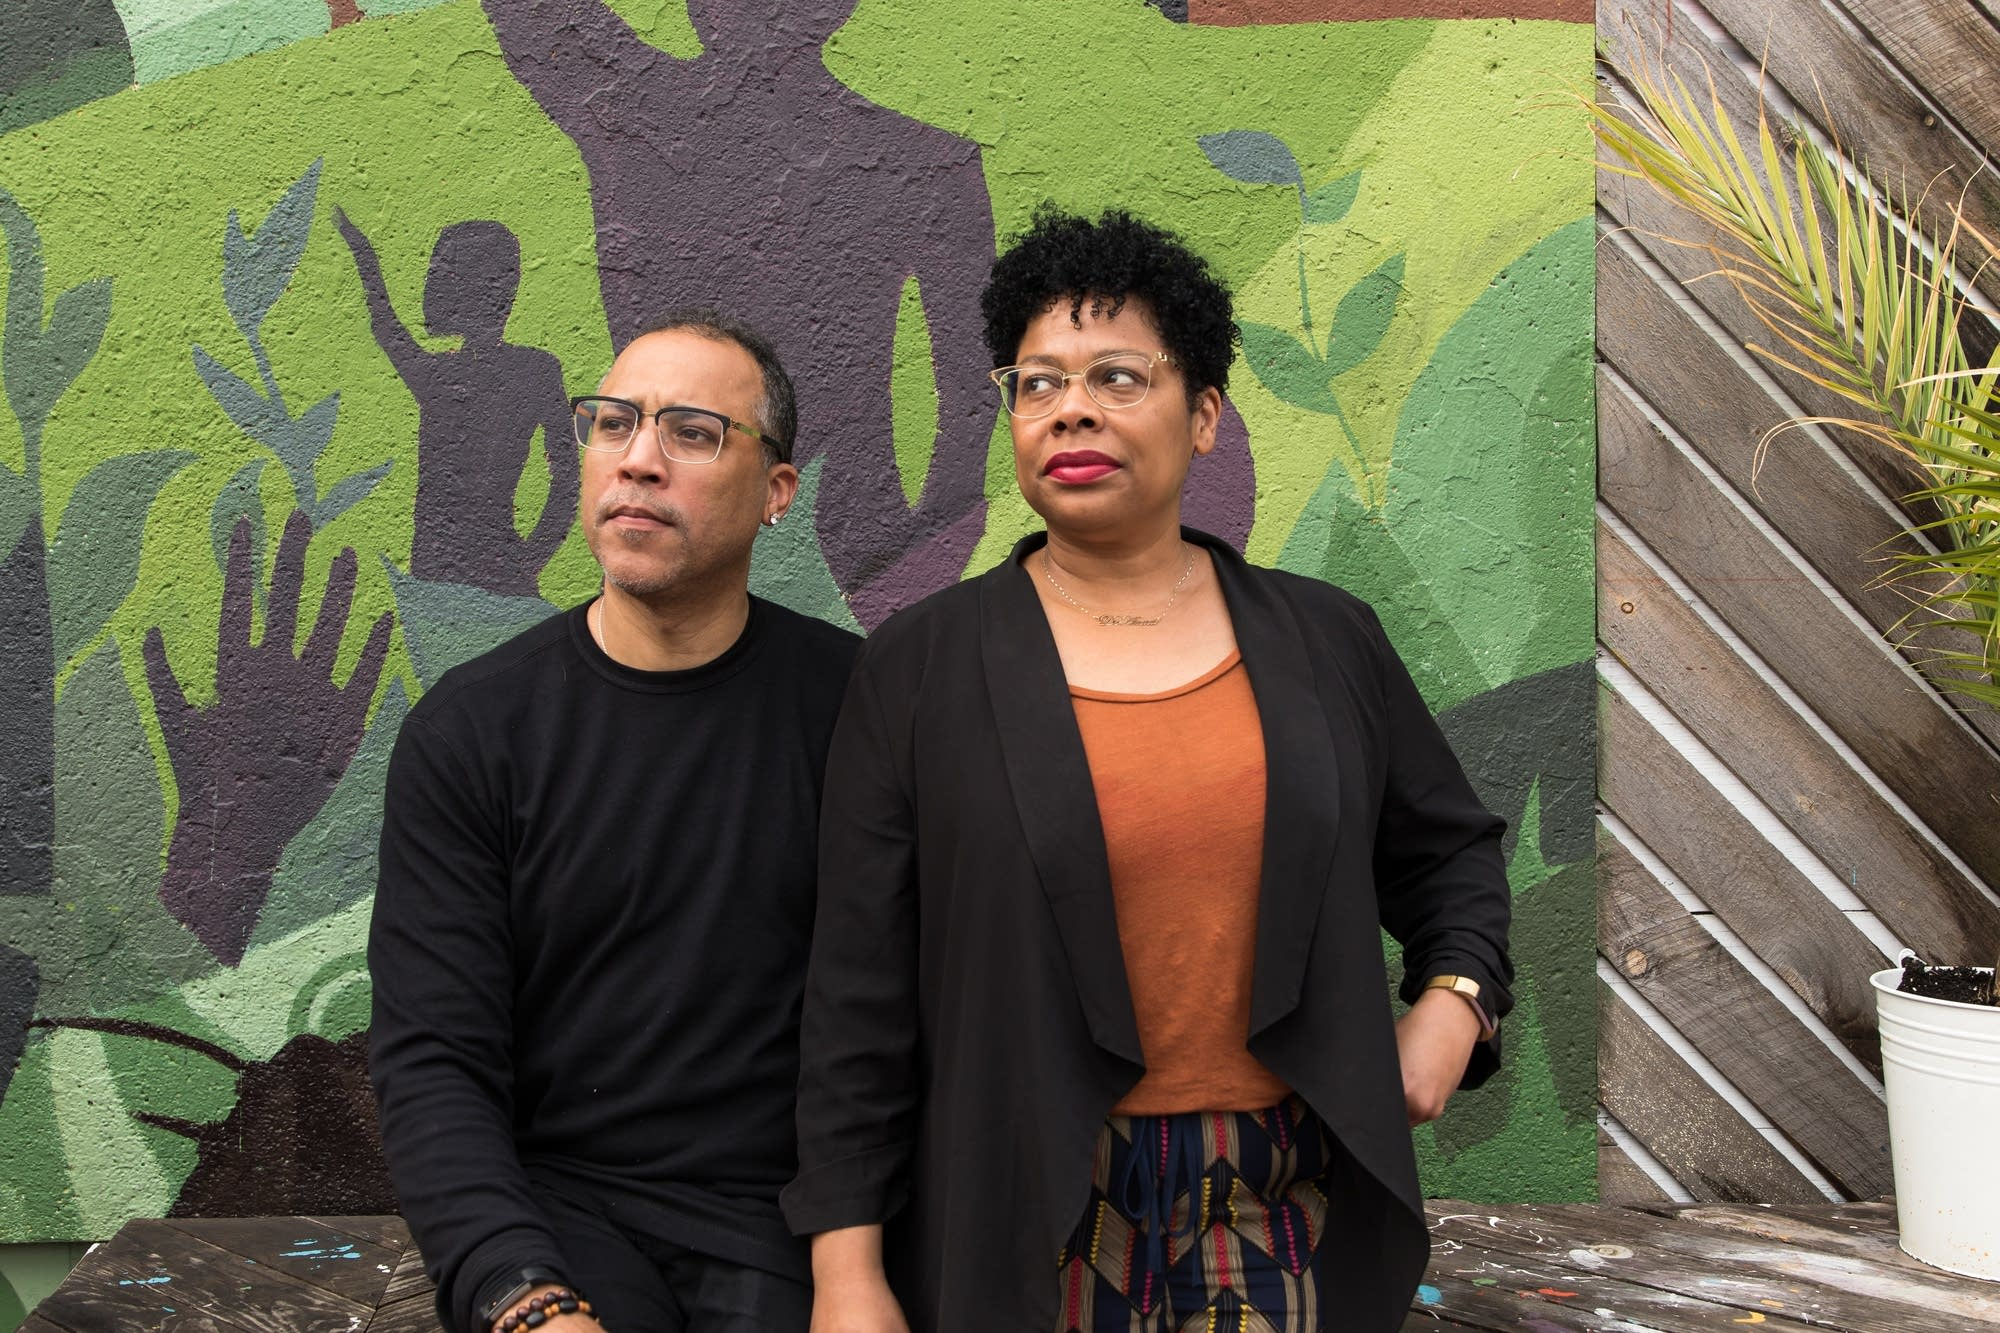 Roger and DeAnna Cummings pose for a portrait in front of a mural.